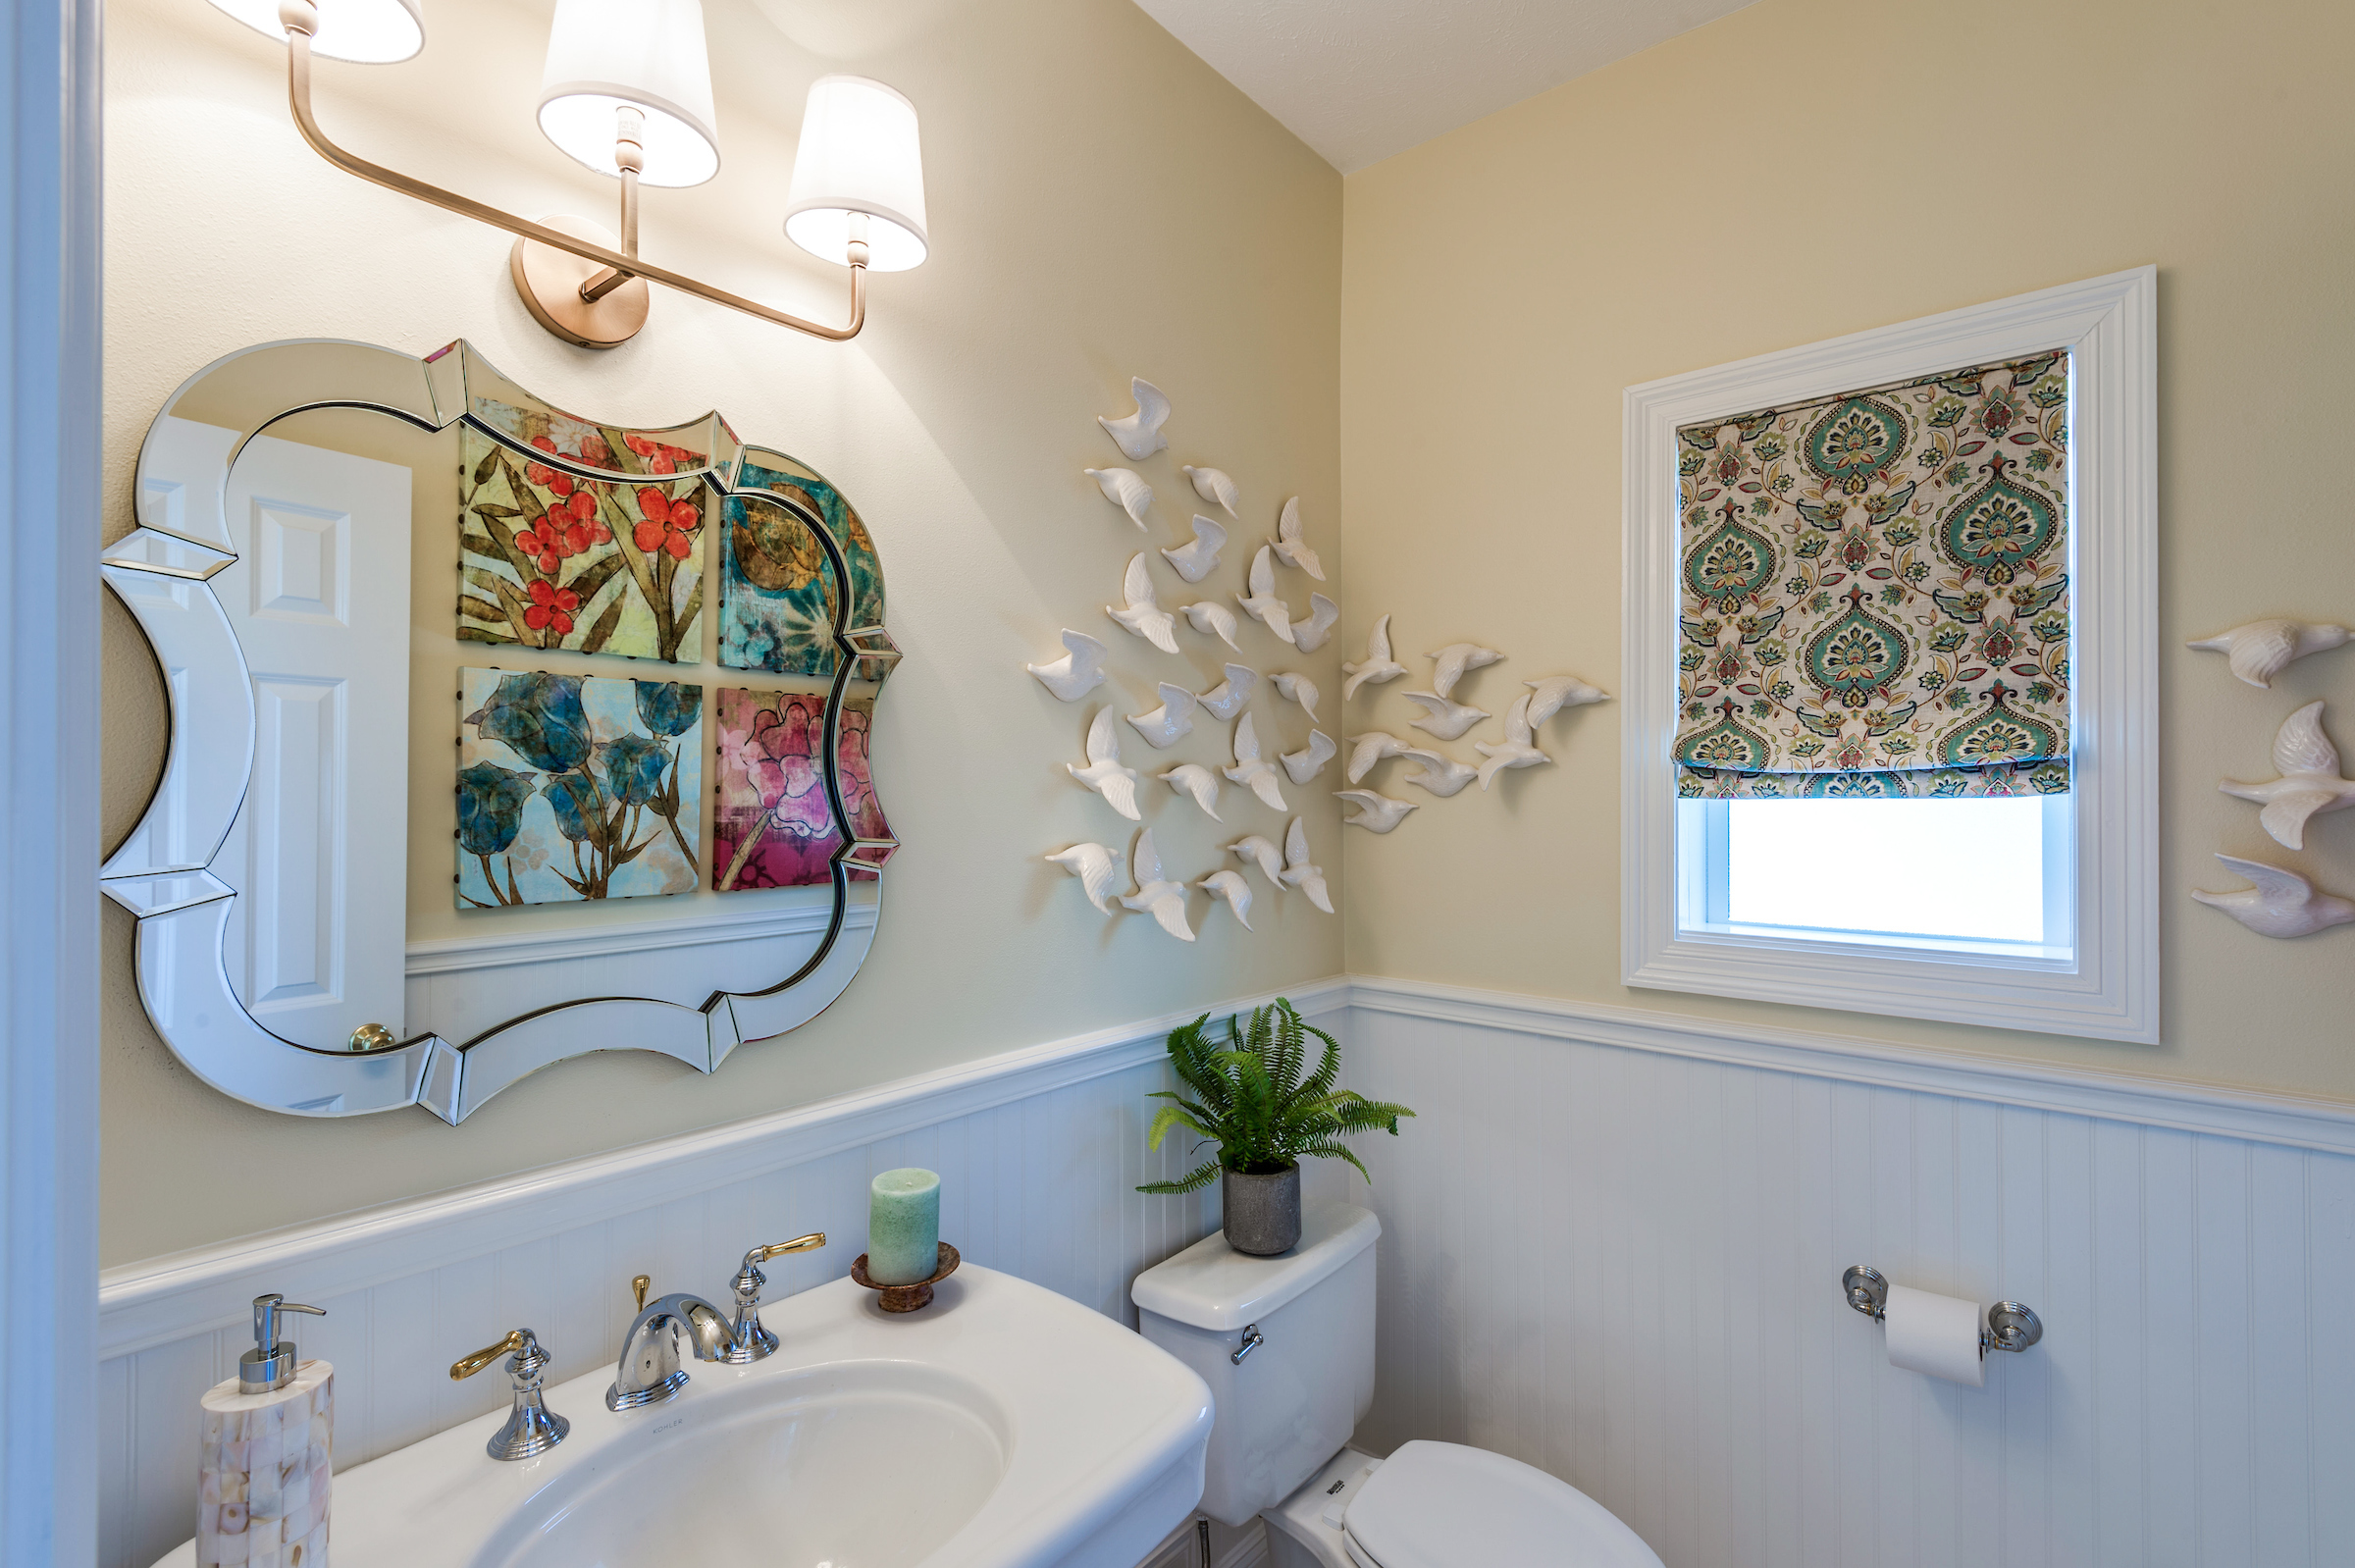 bathroom mirror frame new orleans design style khb interiors